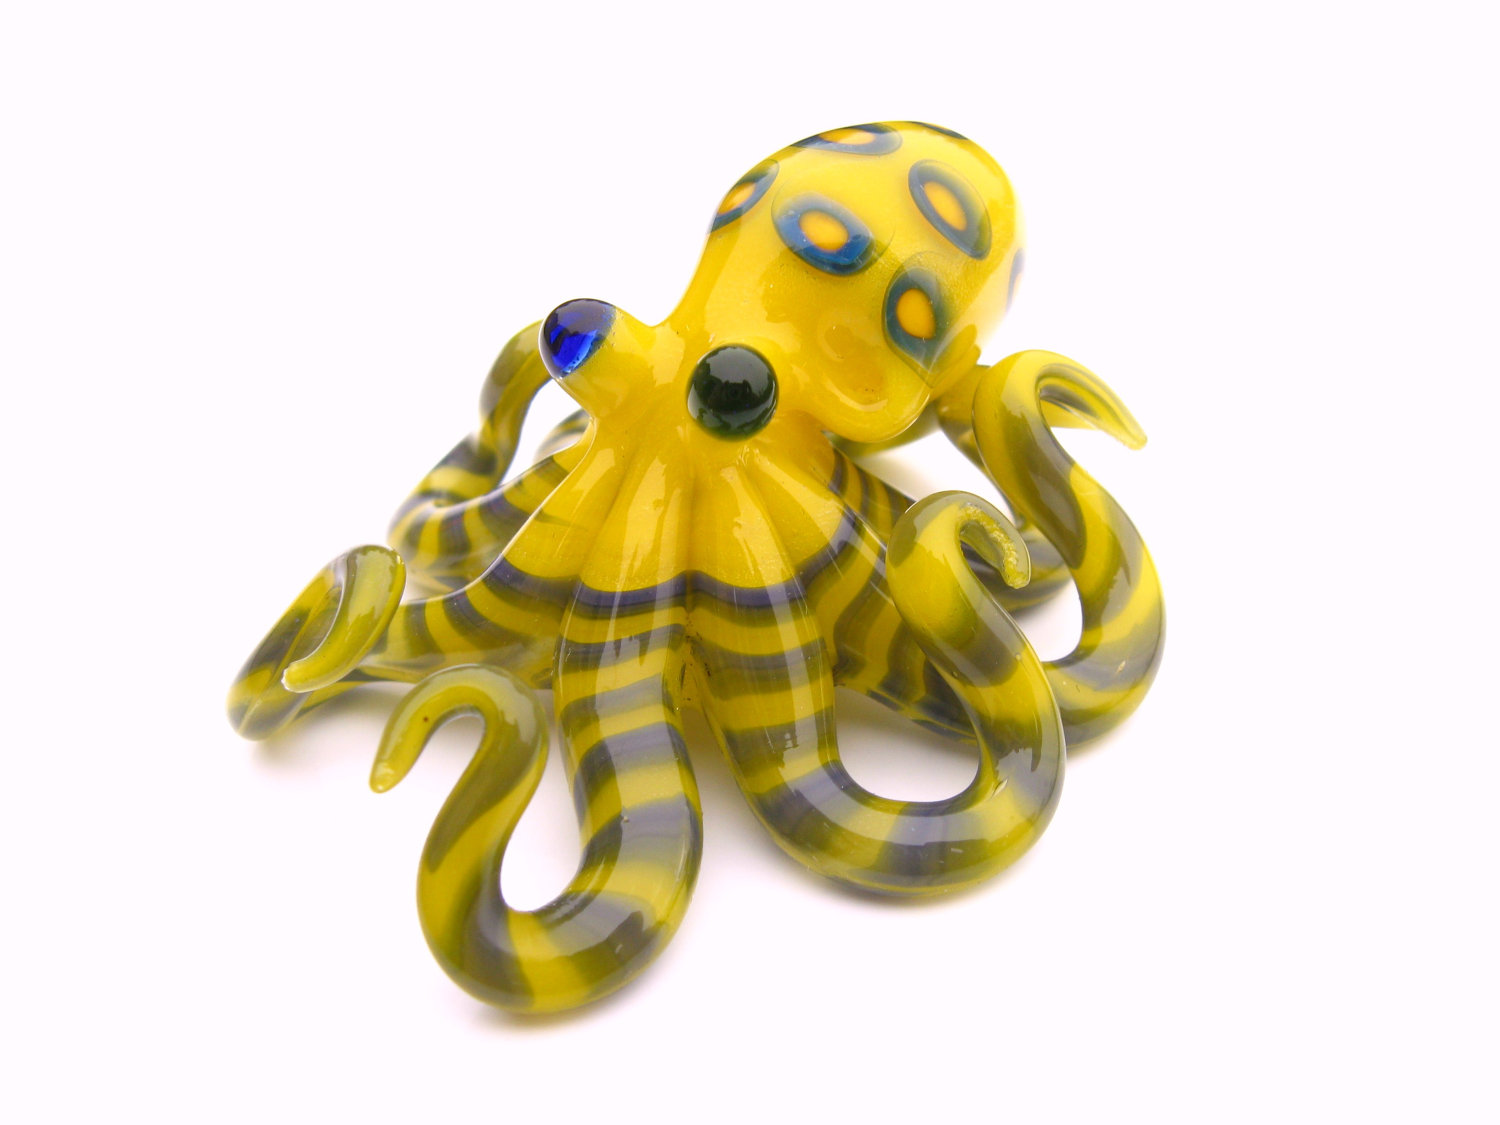 Blue Ringed Octopus clipart #18, Download drawings